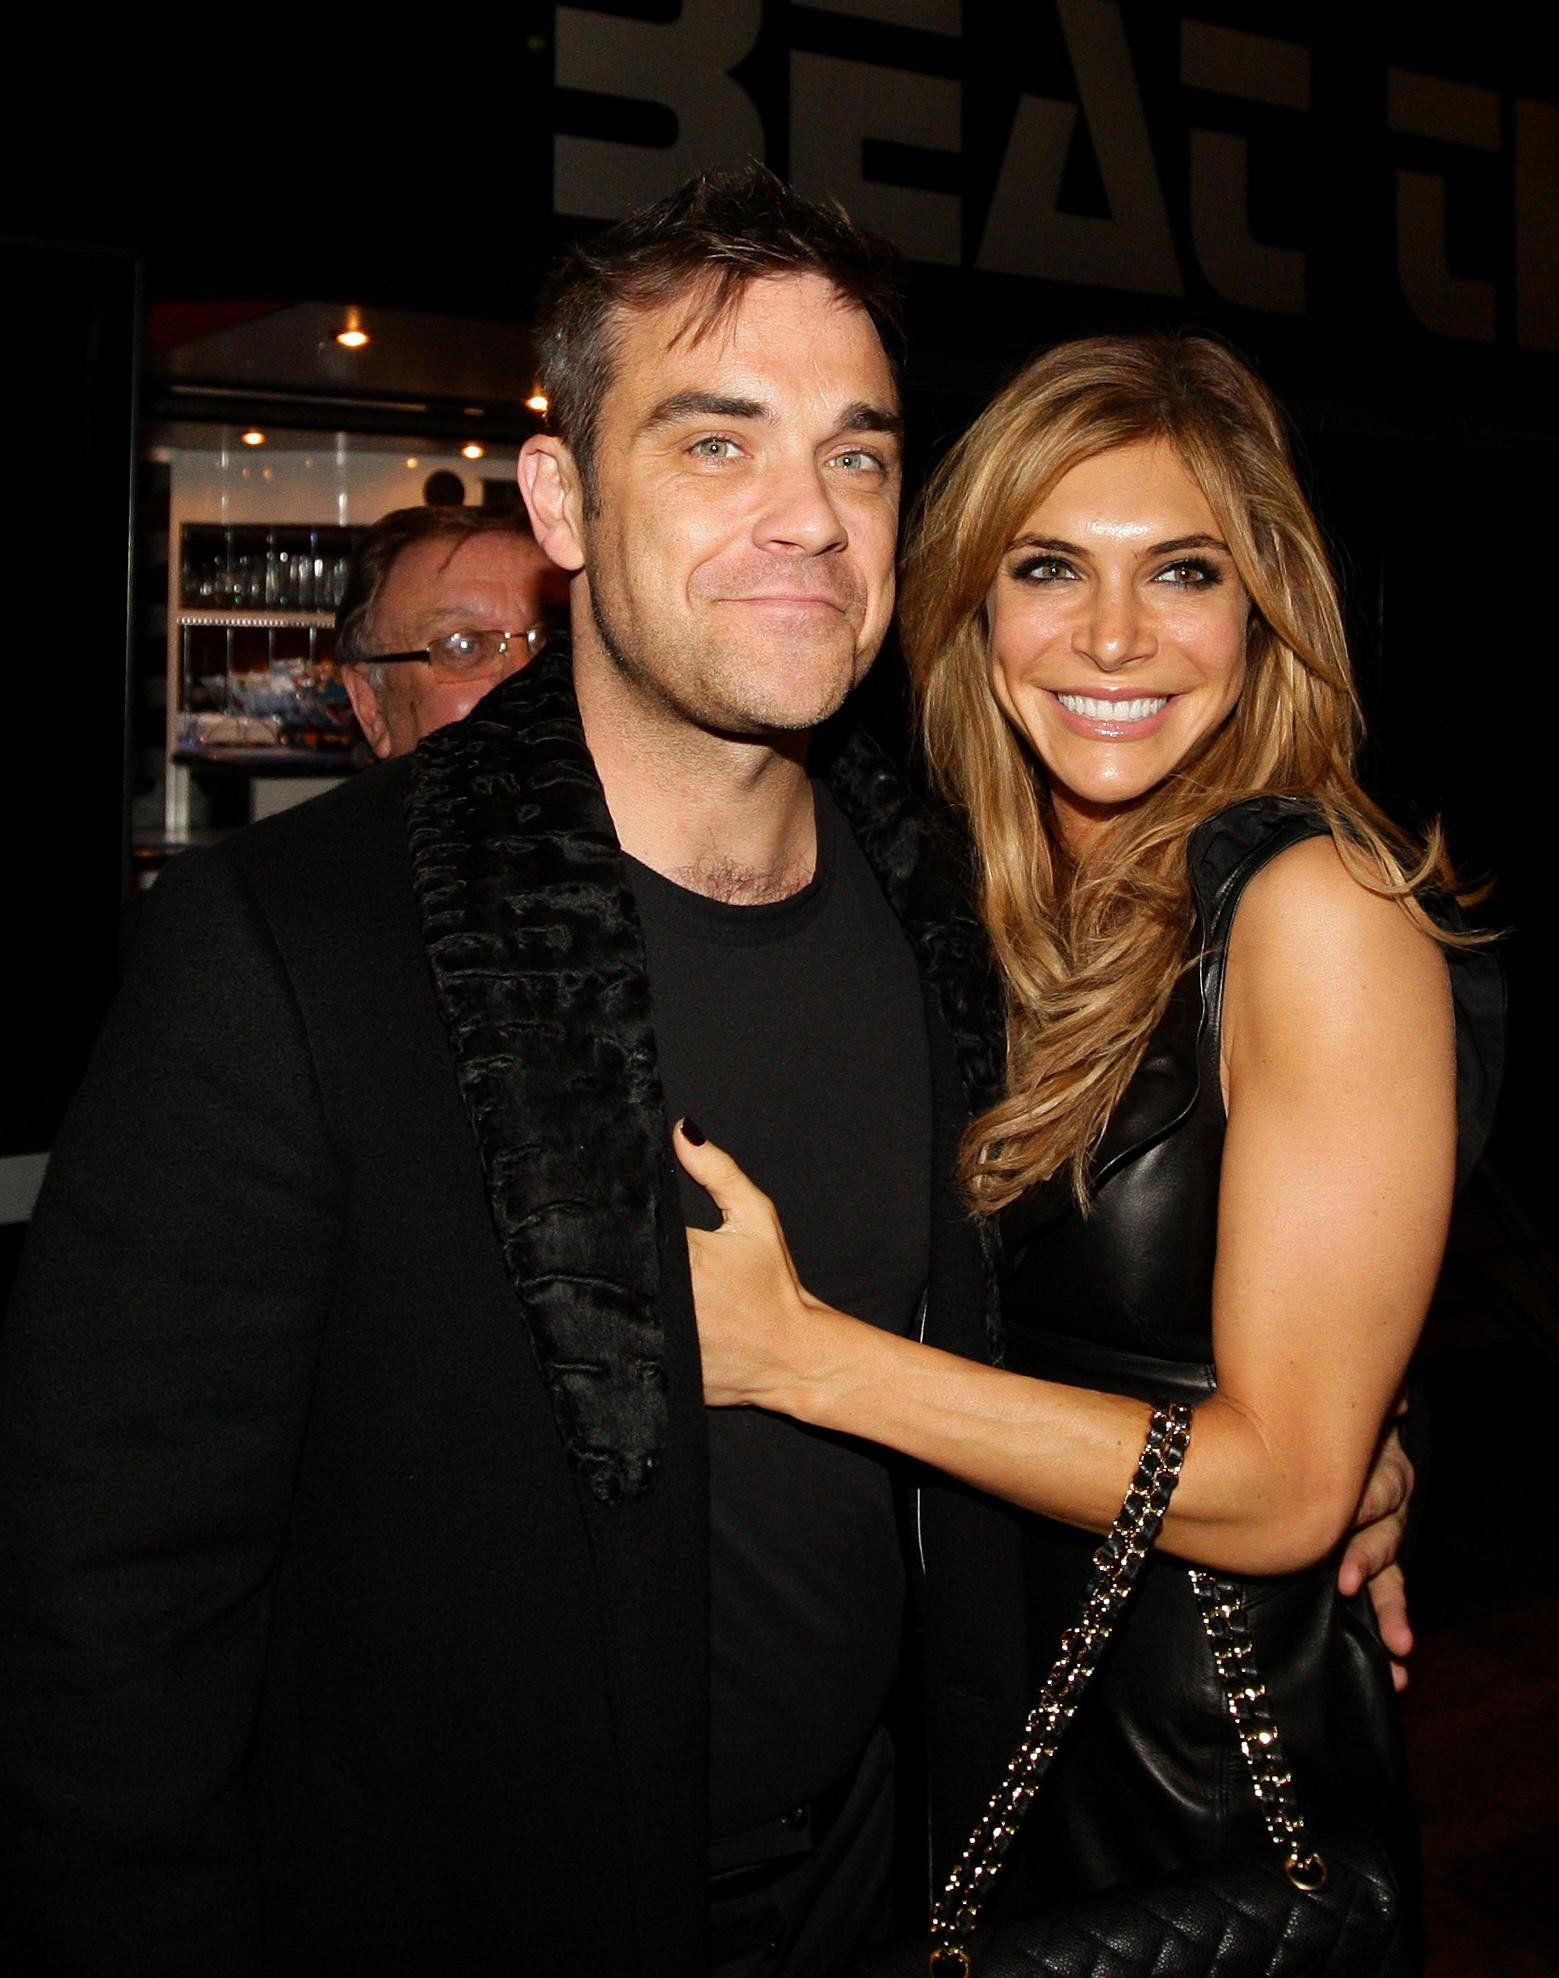 Robbie Williams Reveals He Took Drugs And 'Clucked Like A Chicken' The Night He Met His Wife Ayda